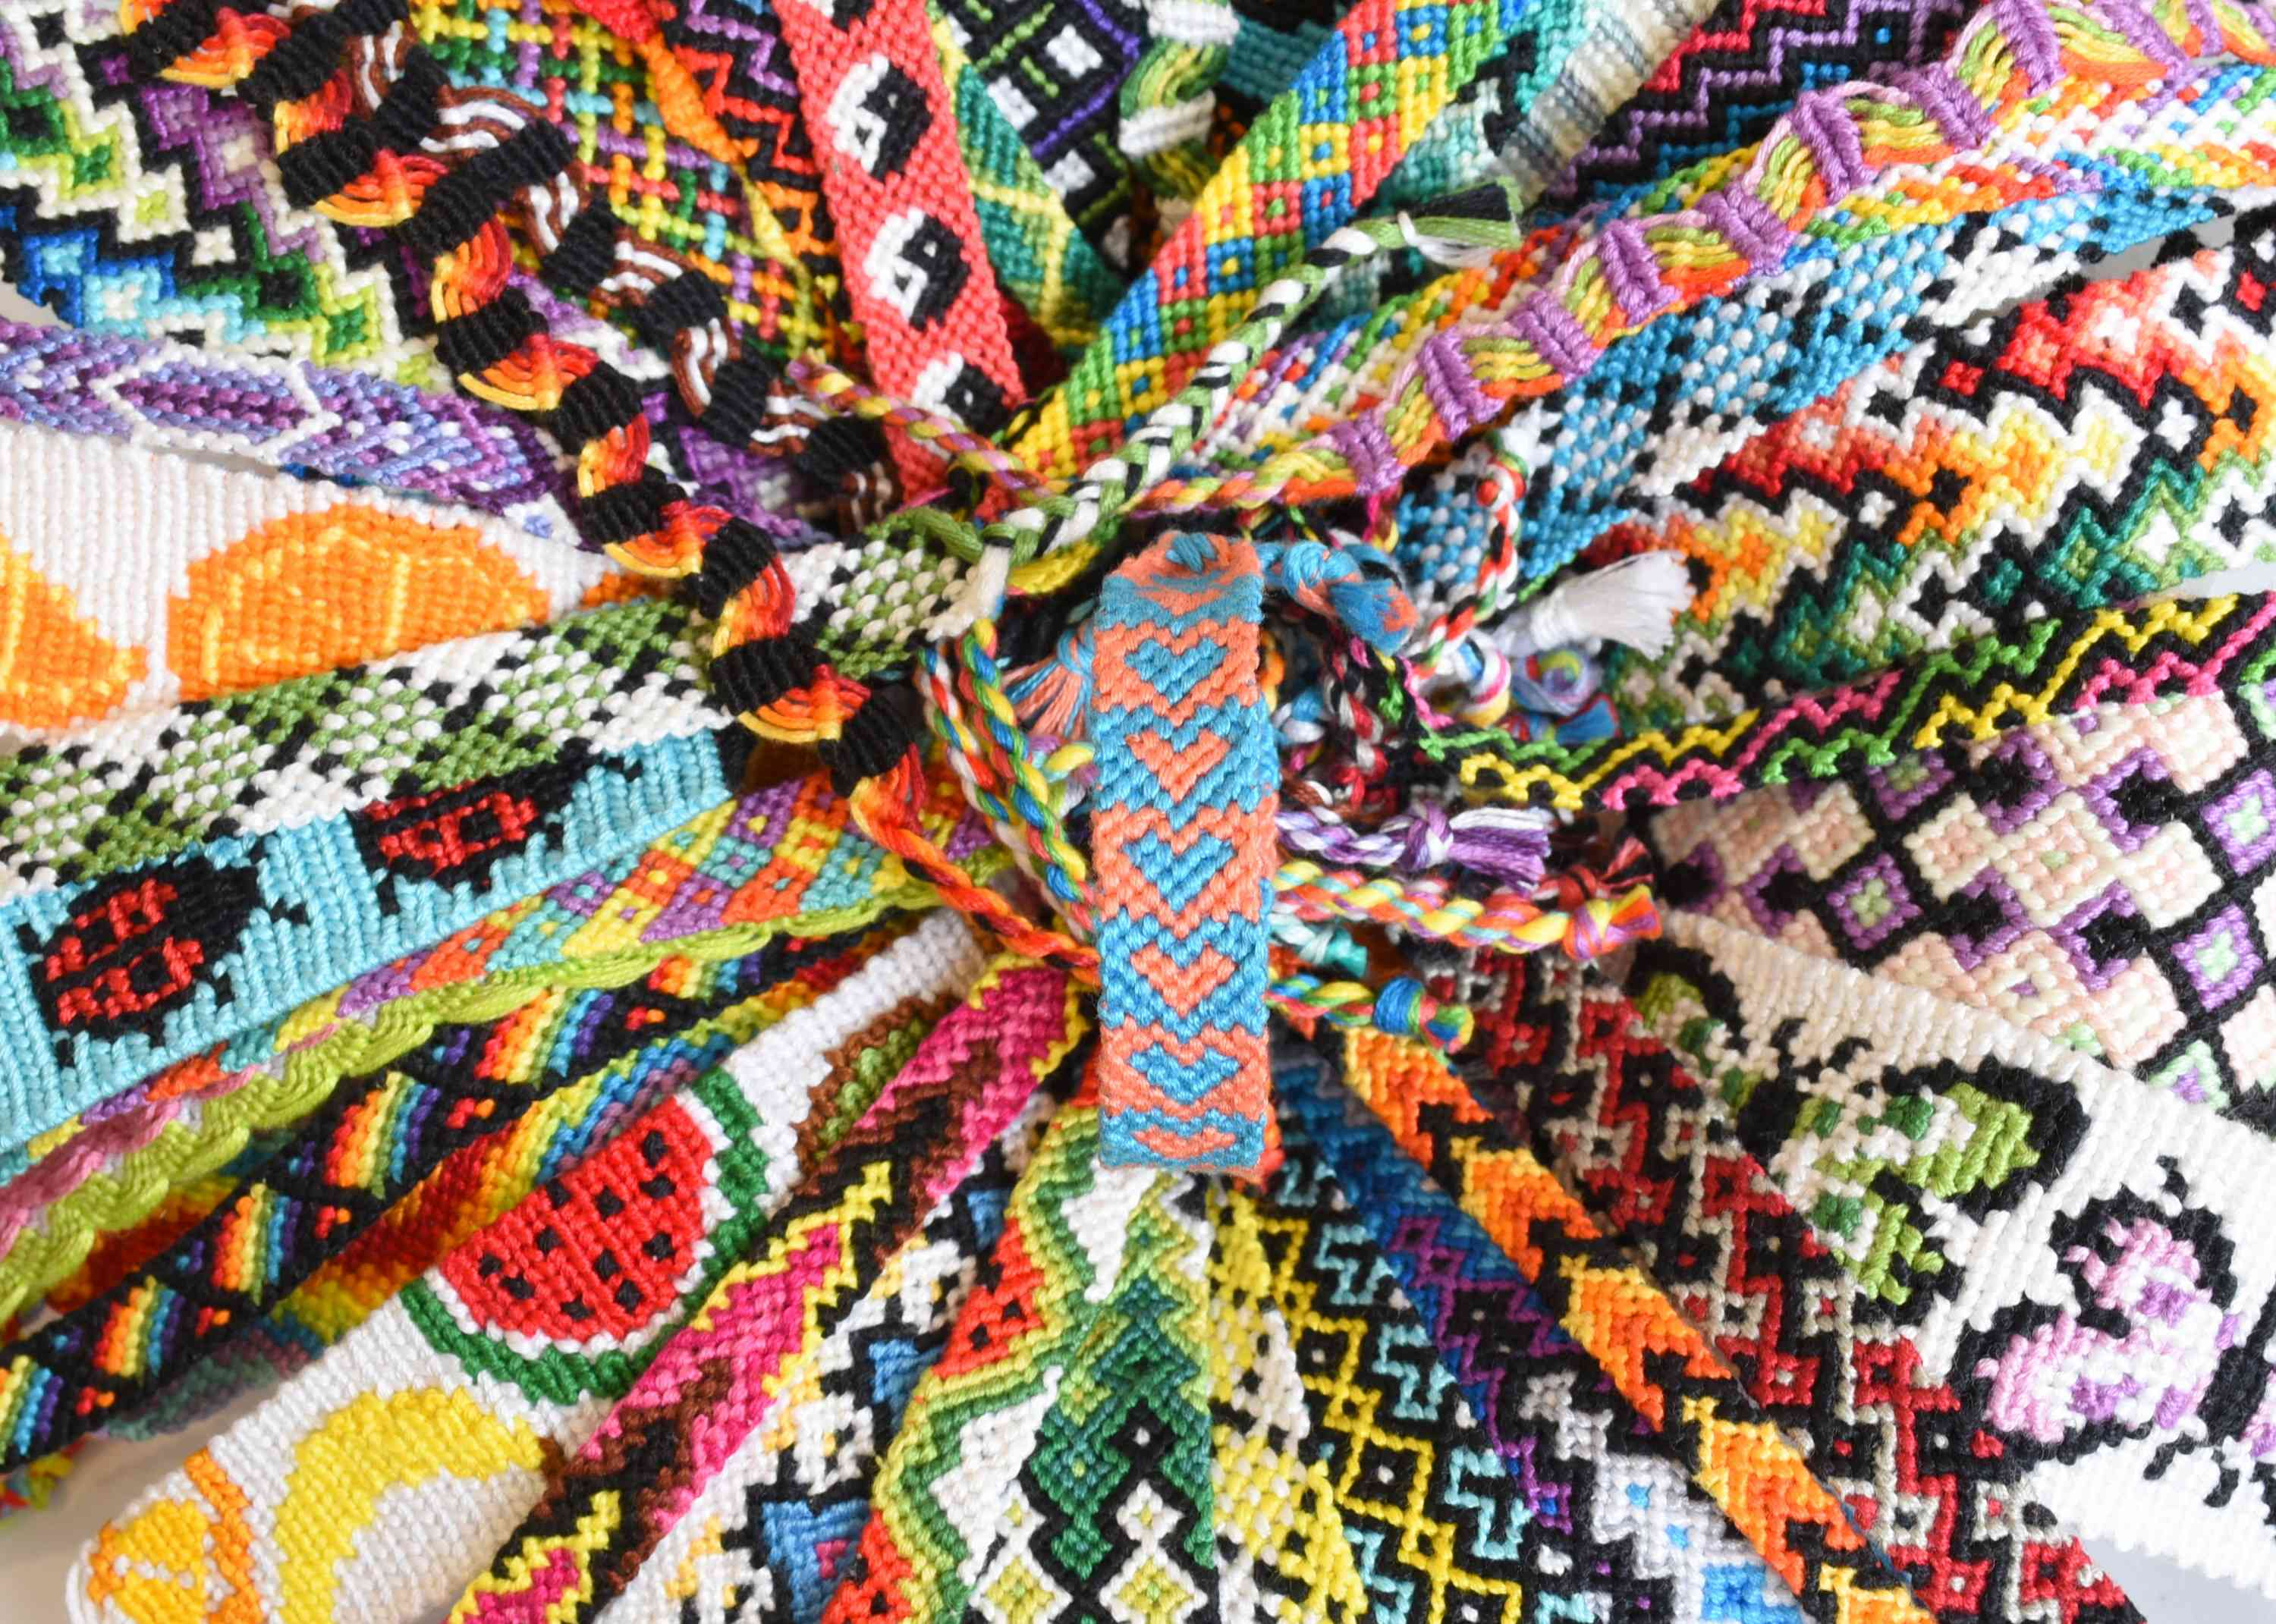 Pile of colorful friendship bracelets with different patterns